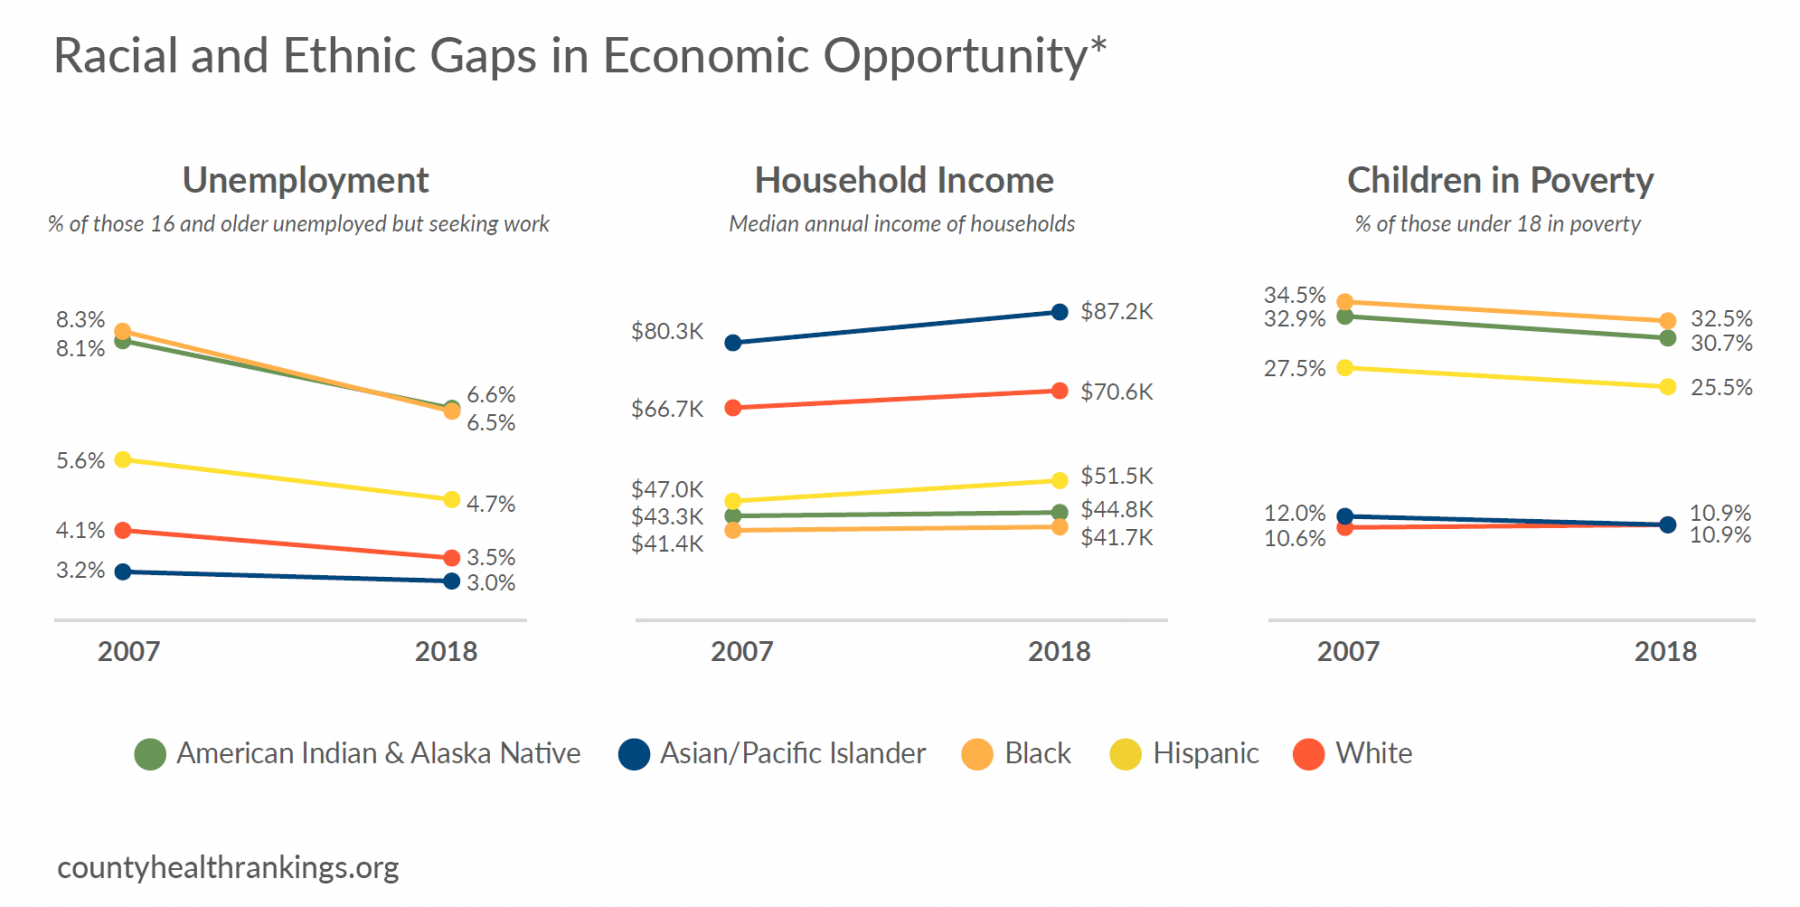 3 charts of racial gaps in economic opportunity